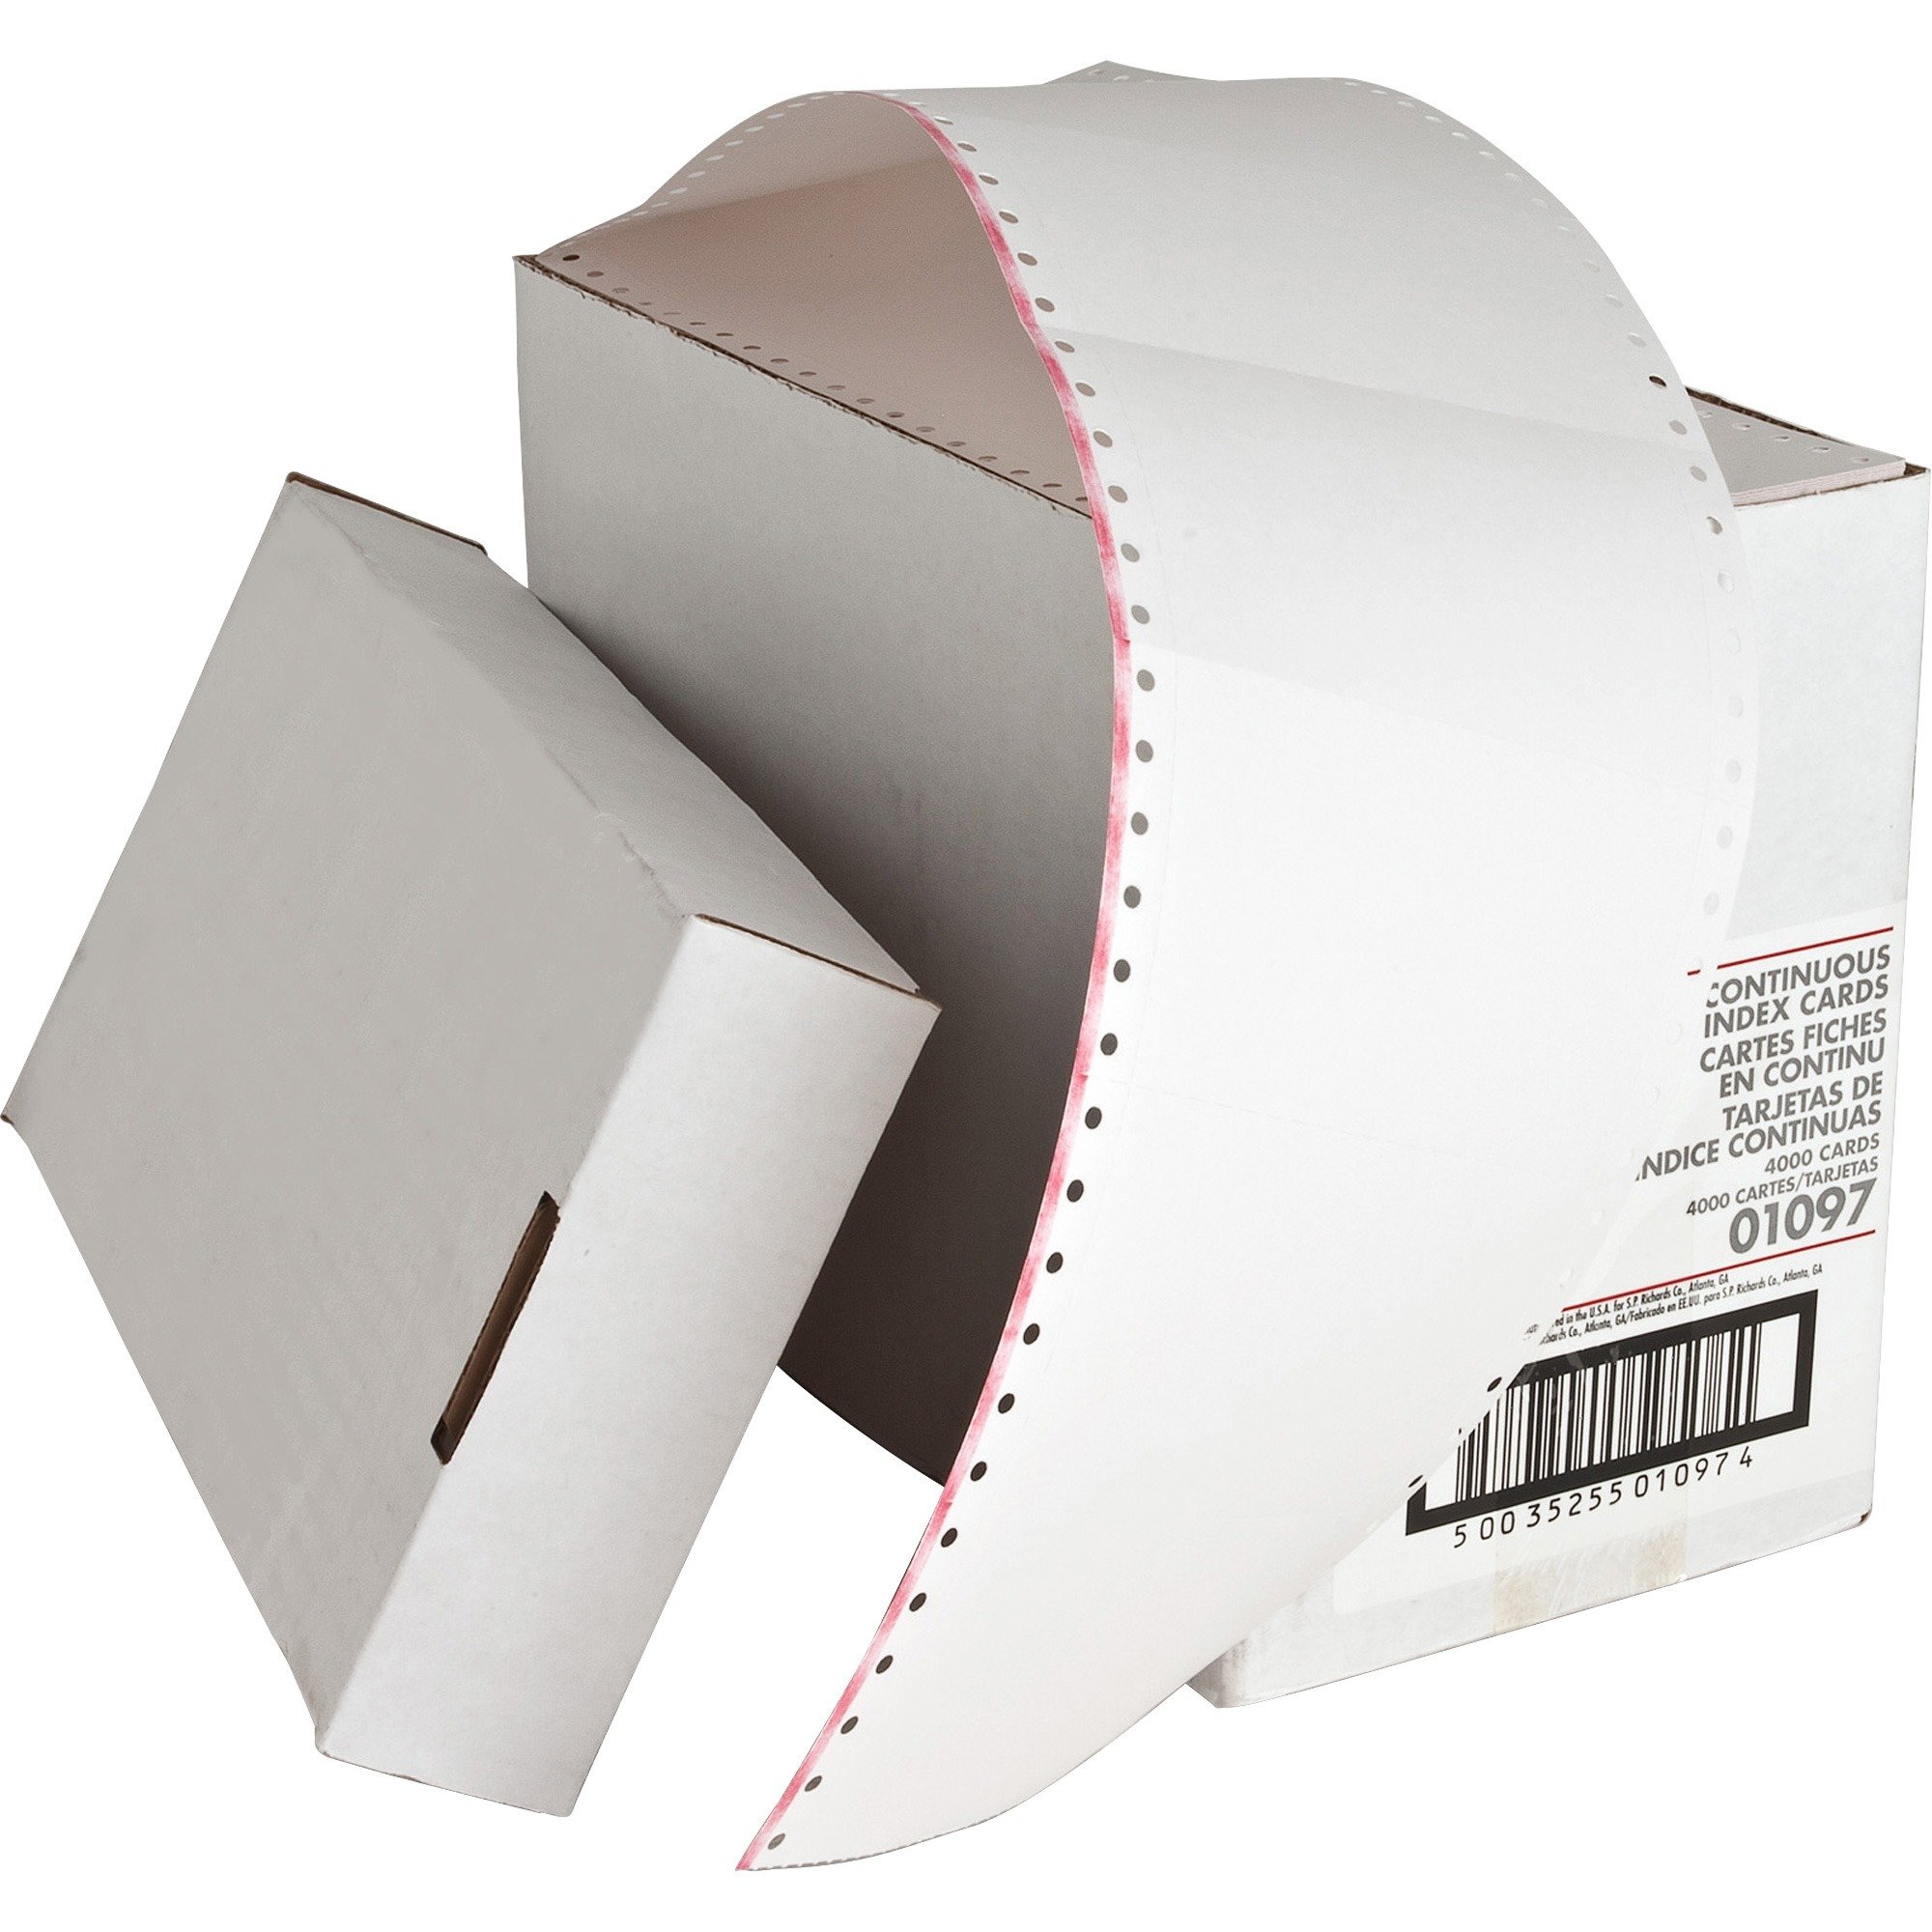 SPR01097 - Sparco Continuous Feed Index Cards